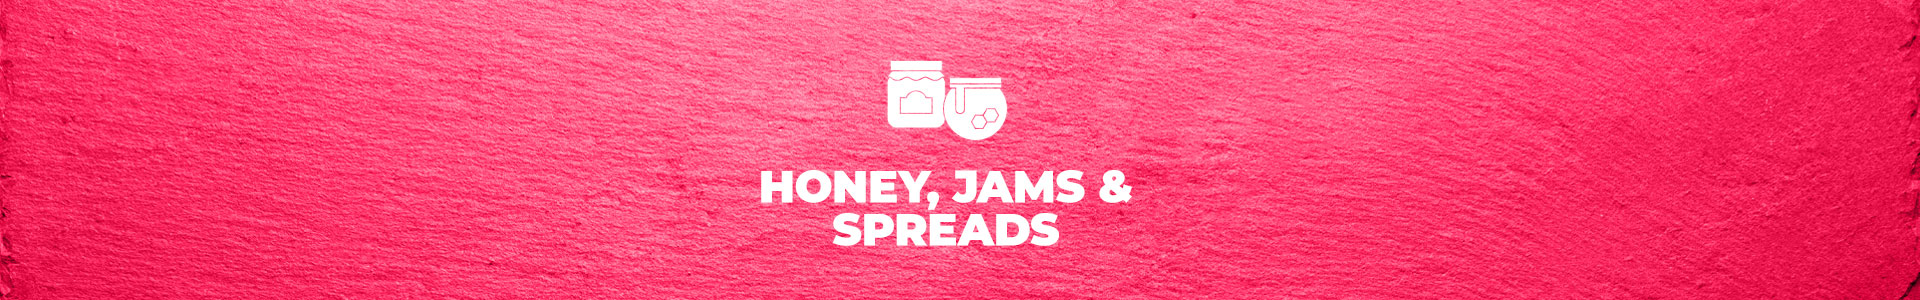 Honey, Jams & Spreads